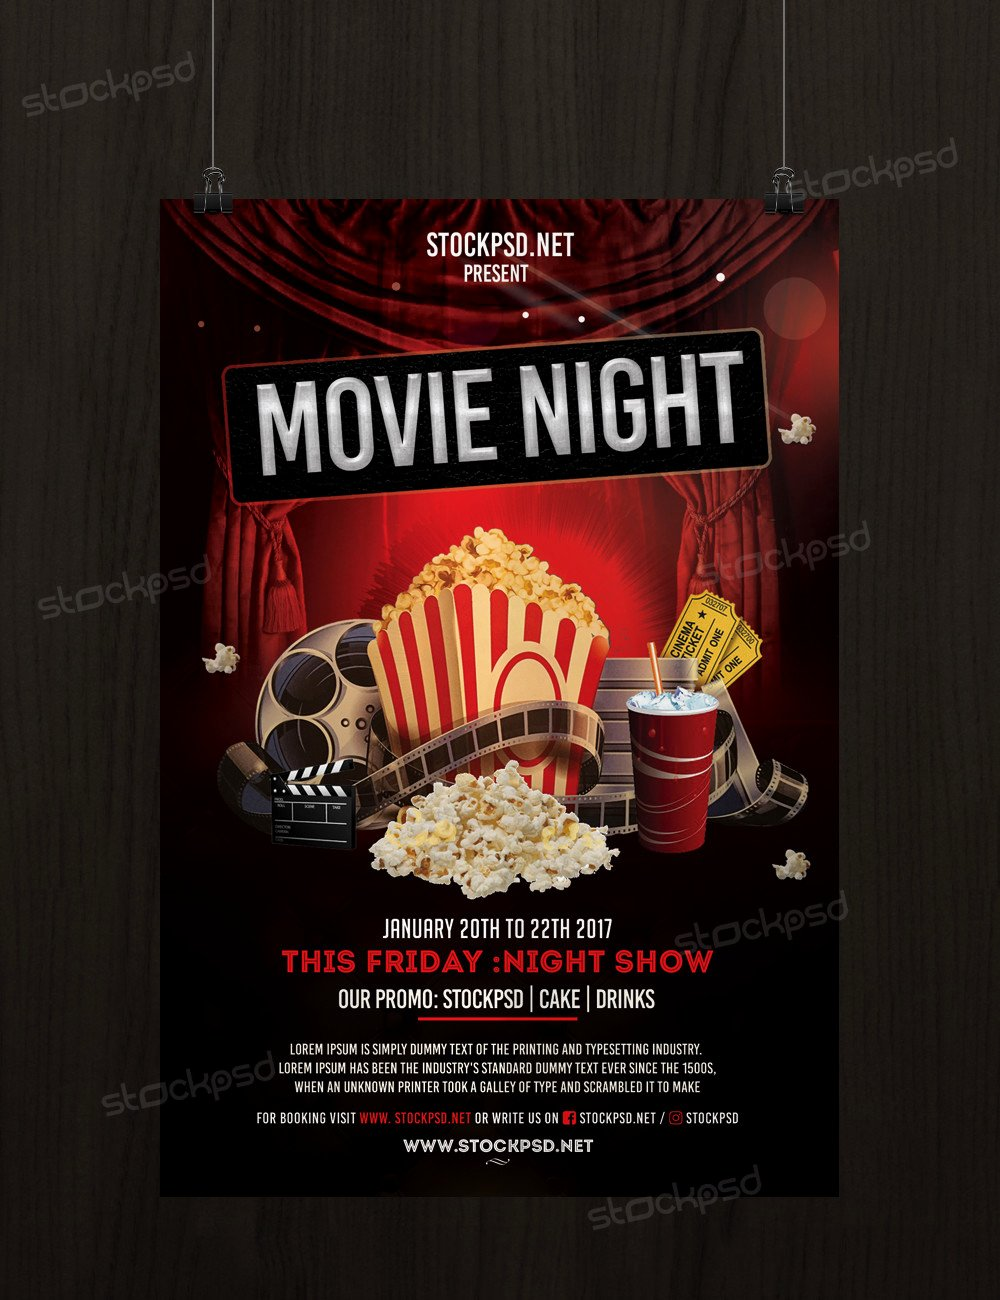 Movie Night Flyer Template Beautiful Movie Night Free Psd Flyer Template Stockpsd